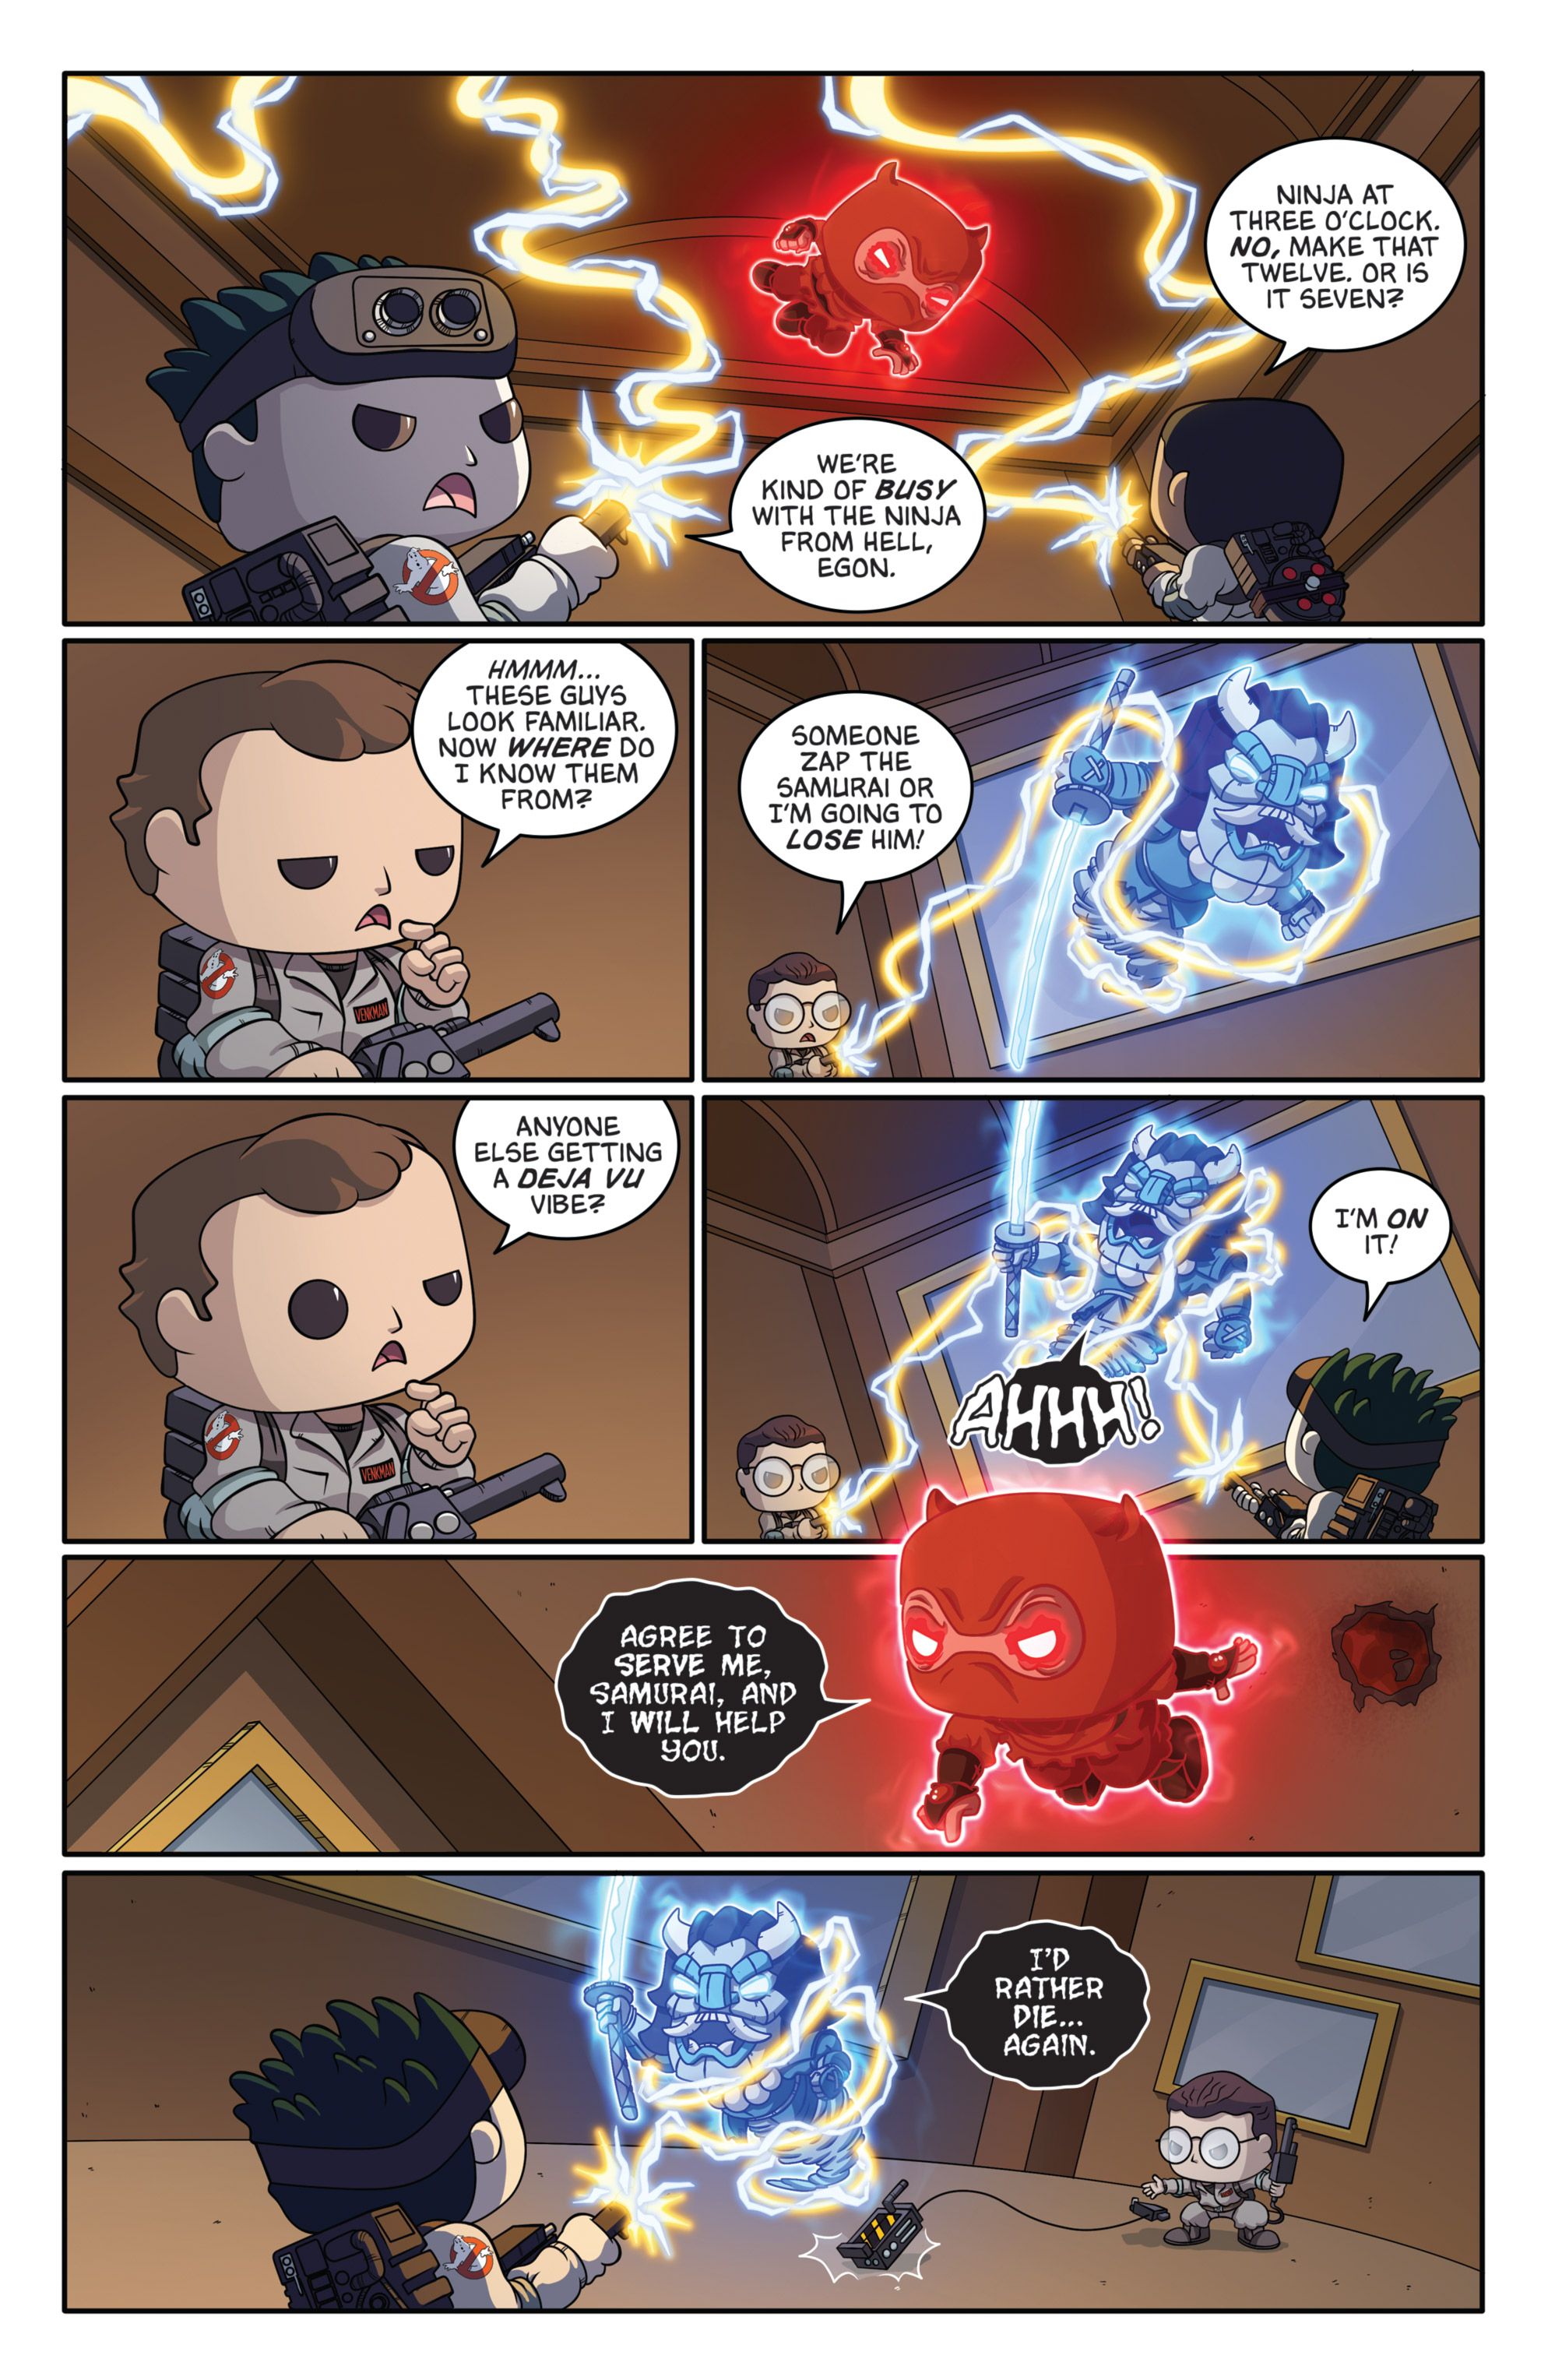 Read online Ghostbusters Funko Universe comic -  Issue # Full - 8